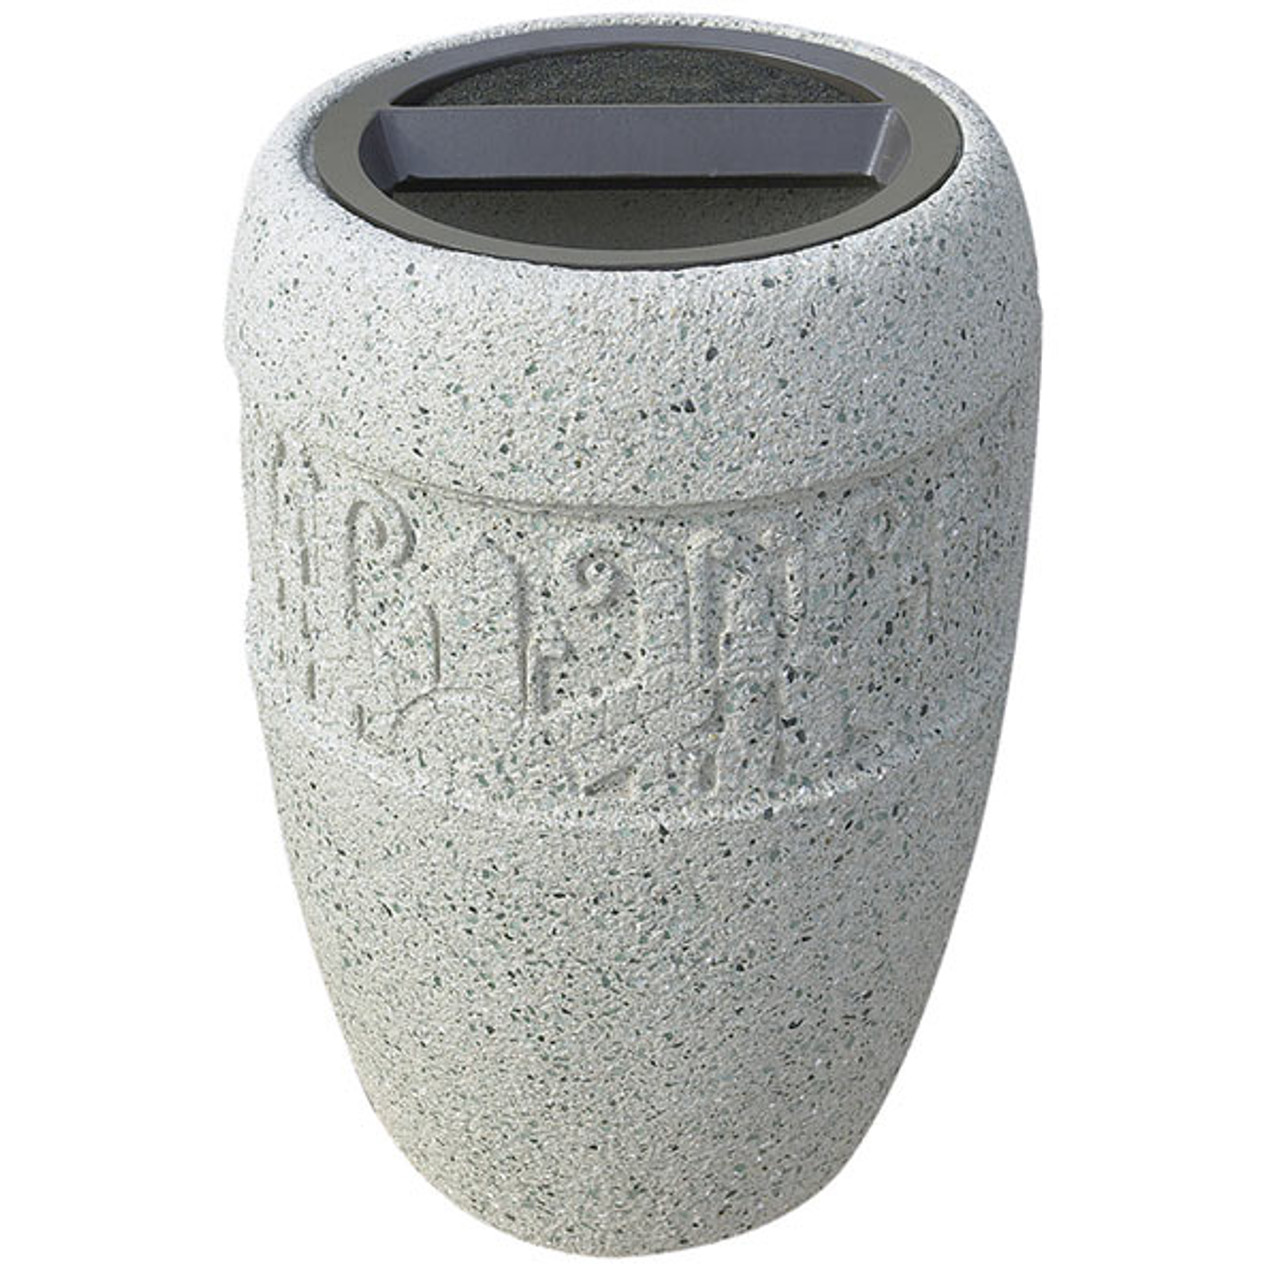 9 Gallon Concrete Ash Trash Top Outdoor Waste Container TF2059 Weatherstone White